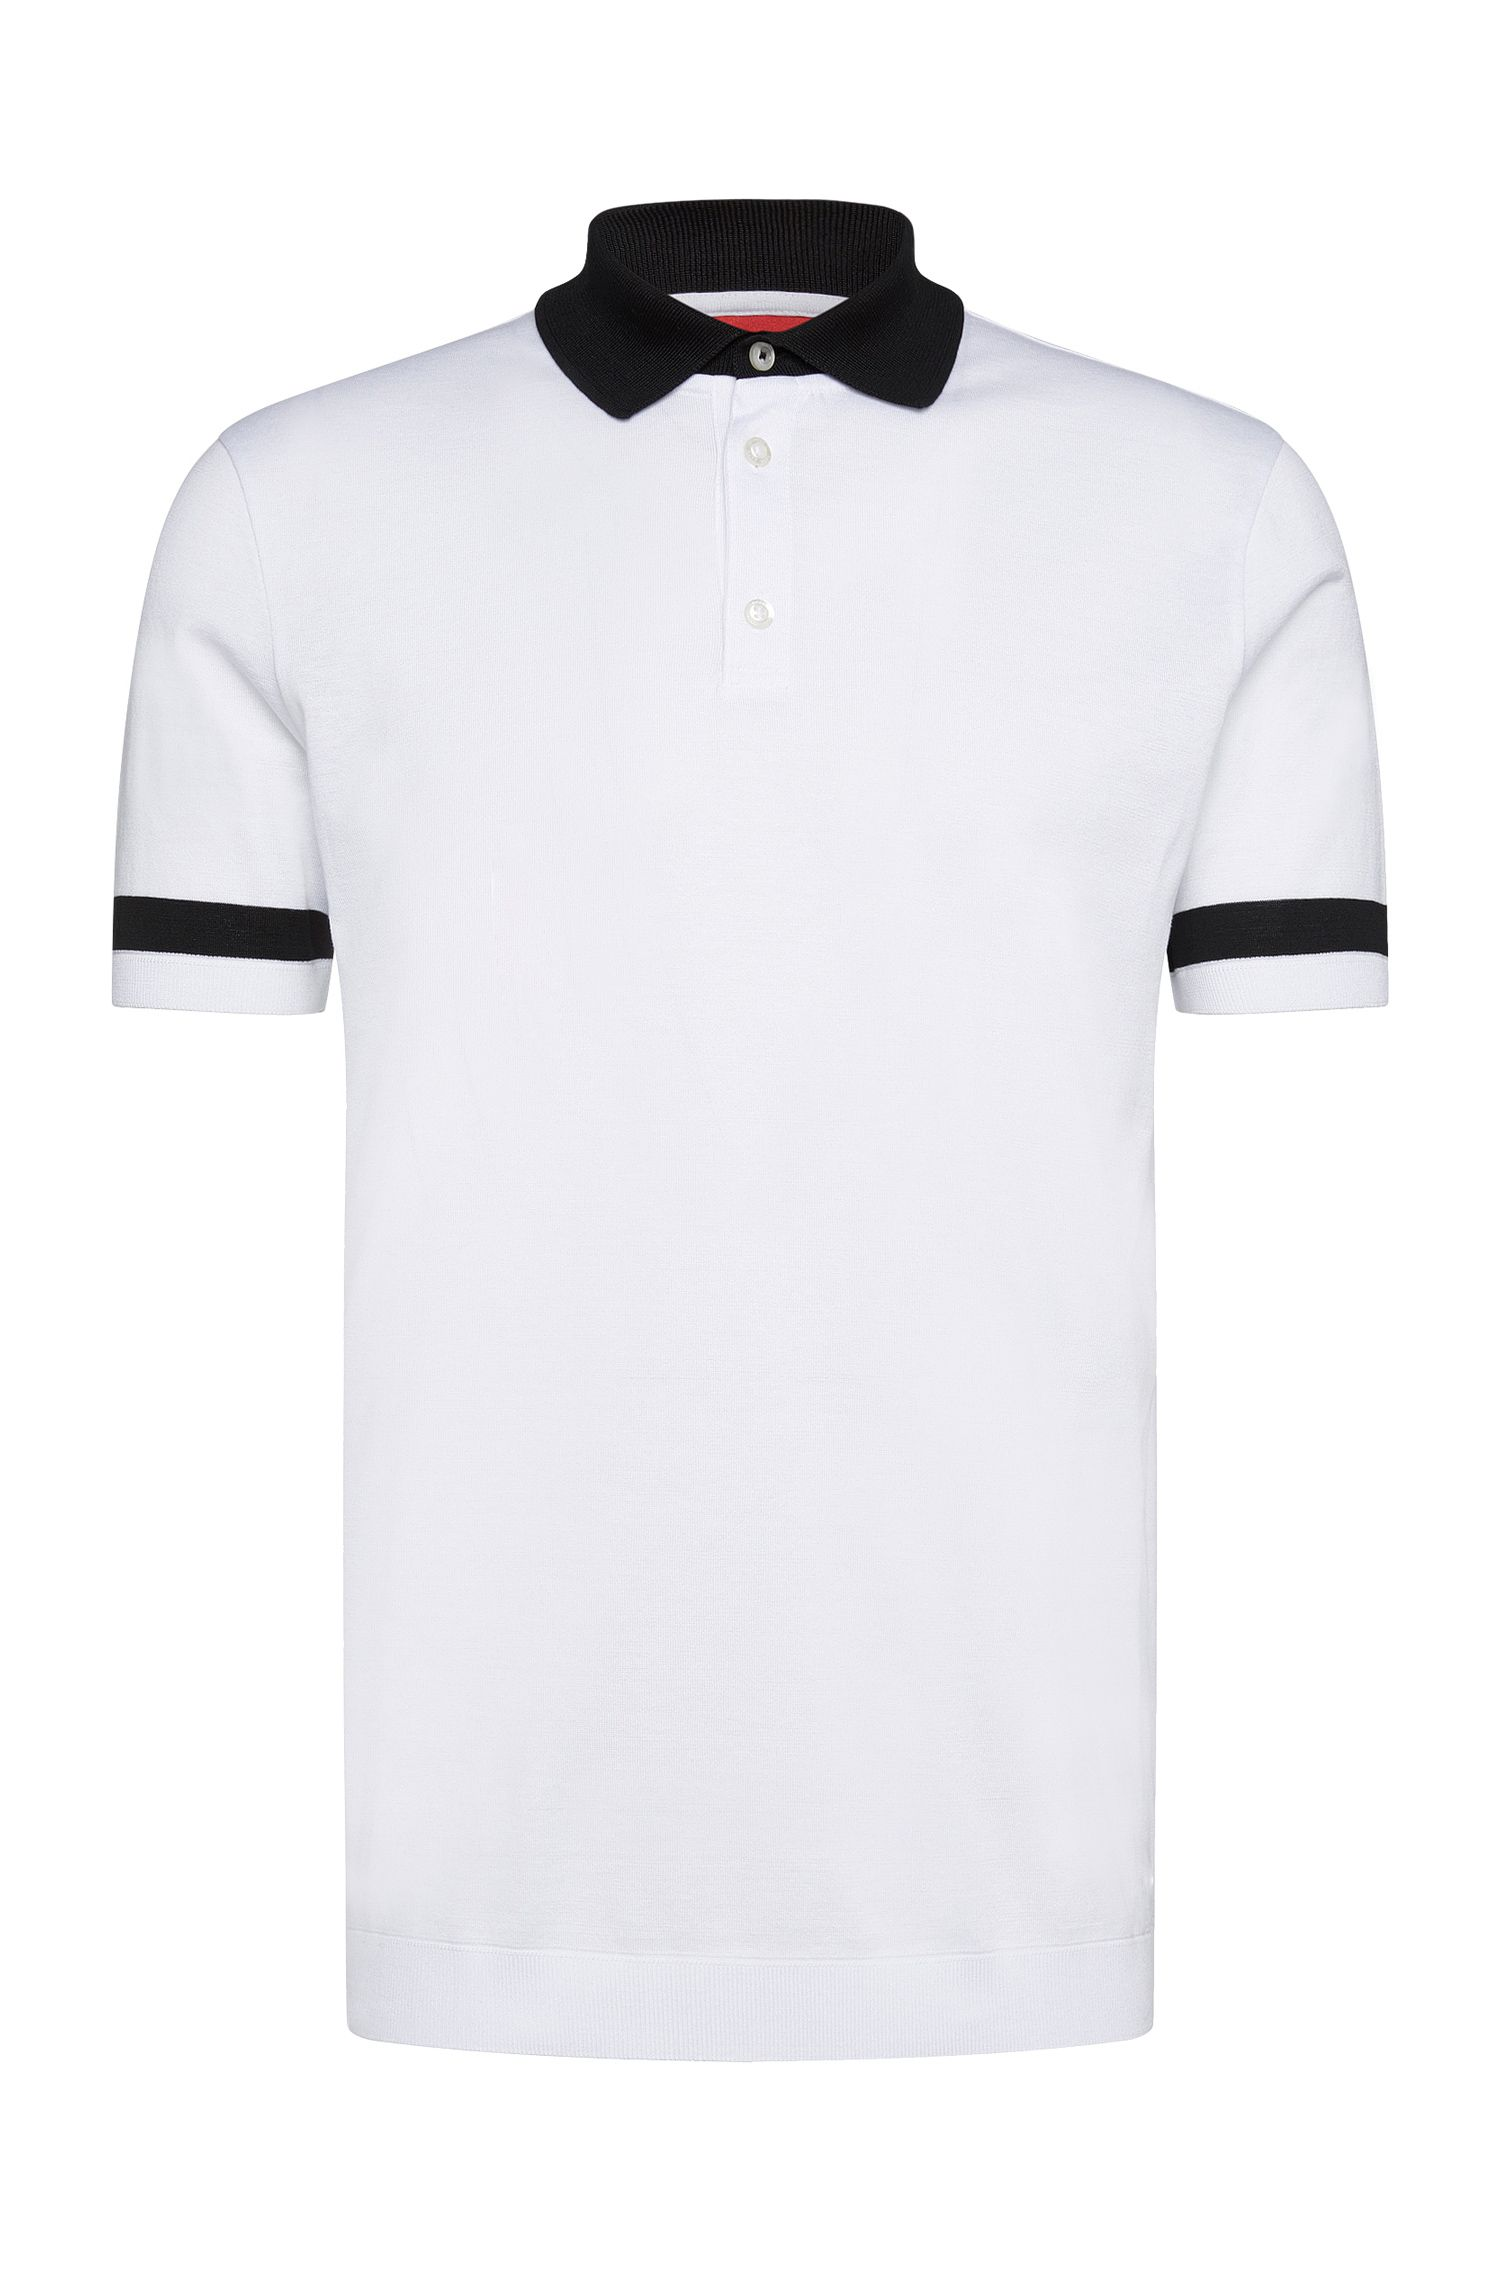 Regular-Fit Poloshirt aus Stretch-Baumwolle: 'Dharp'